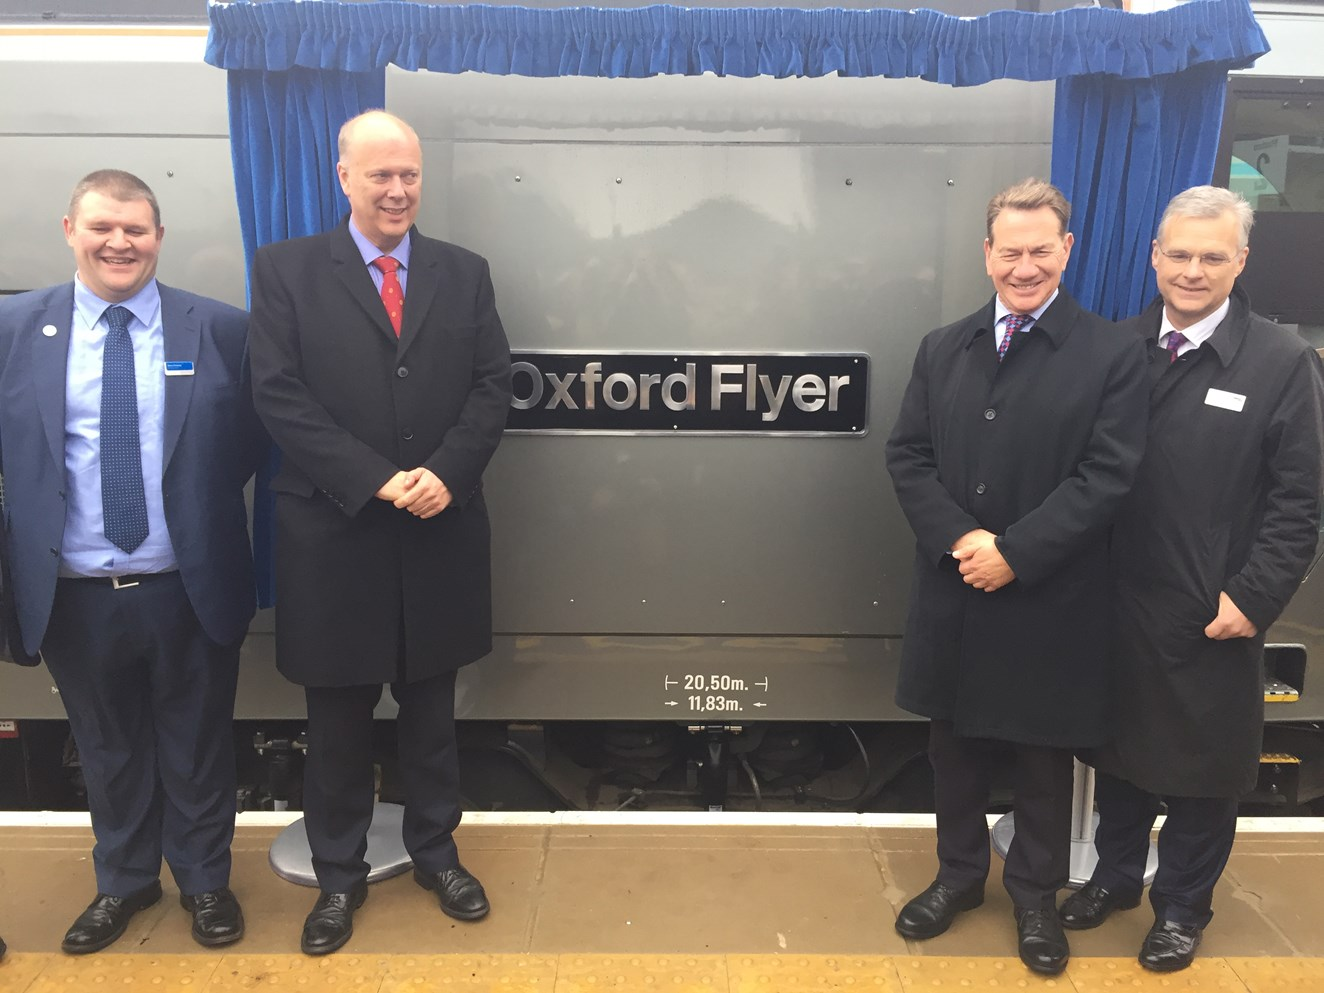 Network Rail and Chiltern Railways open ground-breaking new rail line connecting Oxford city centre and London: Launched: Chiltern's Oxford to Marylebone service – December 2016